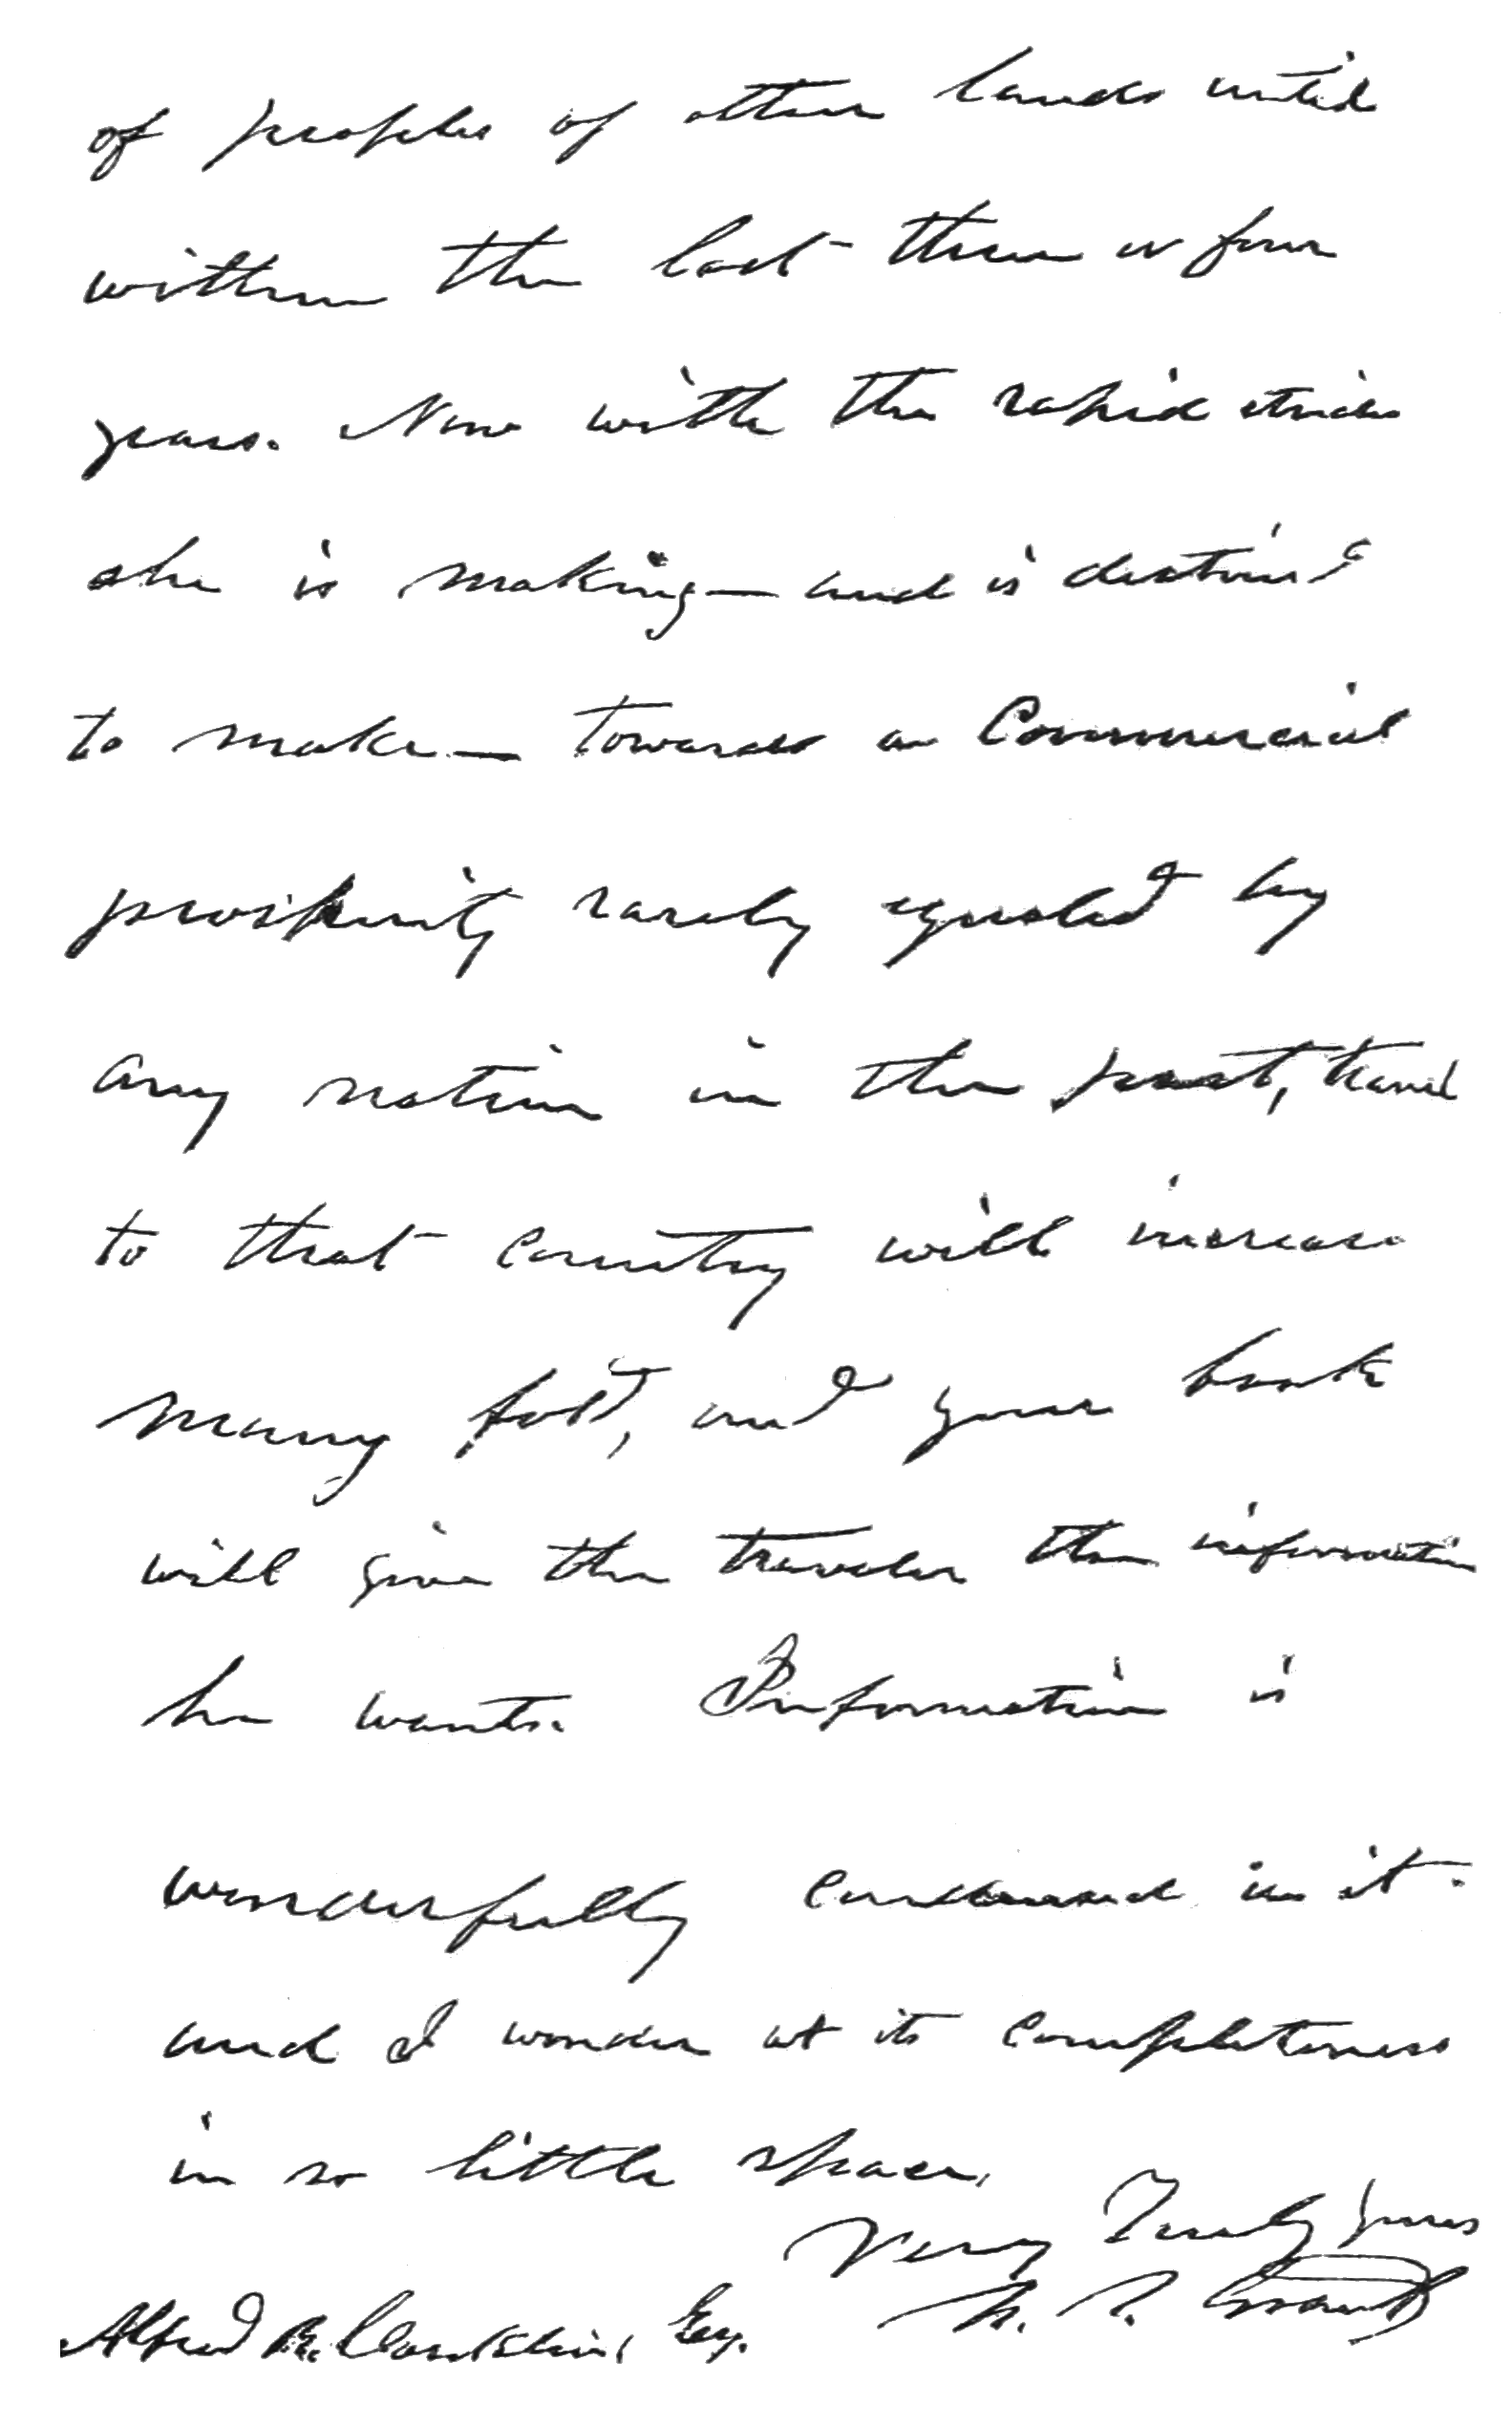 AGTM D013 Letter from General Grant Page 2.png